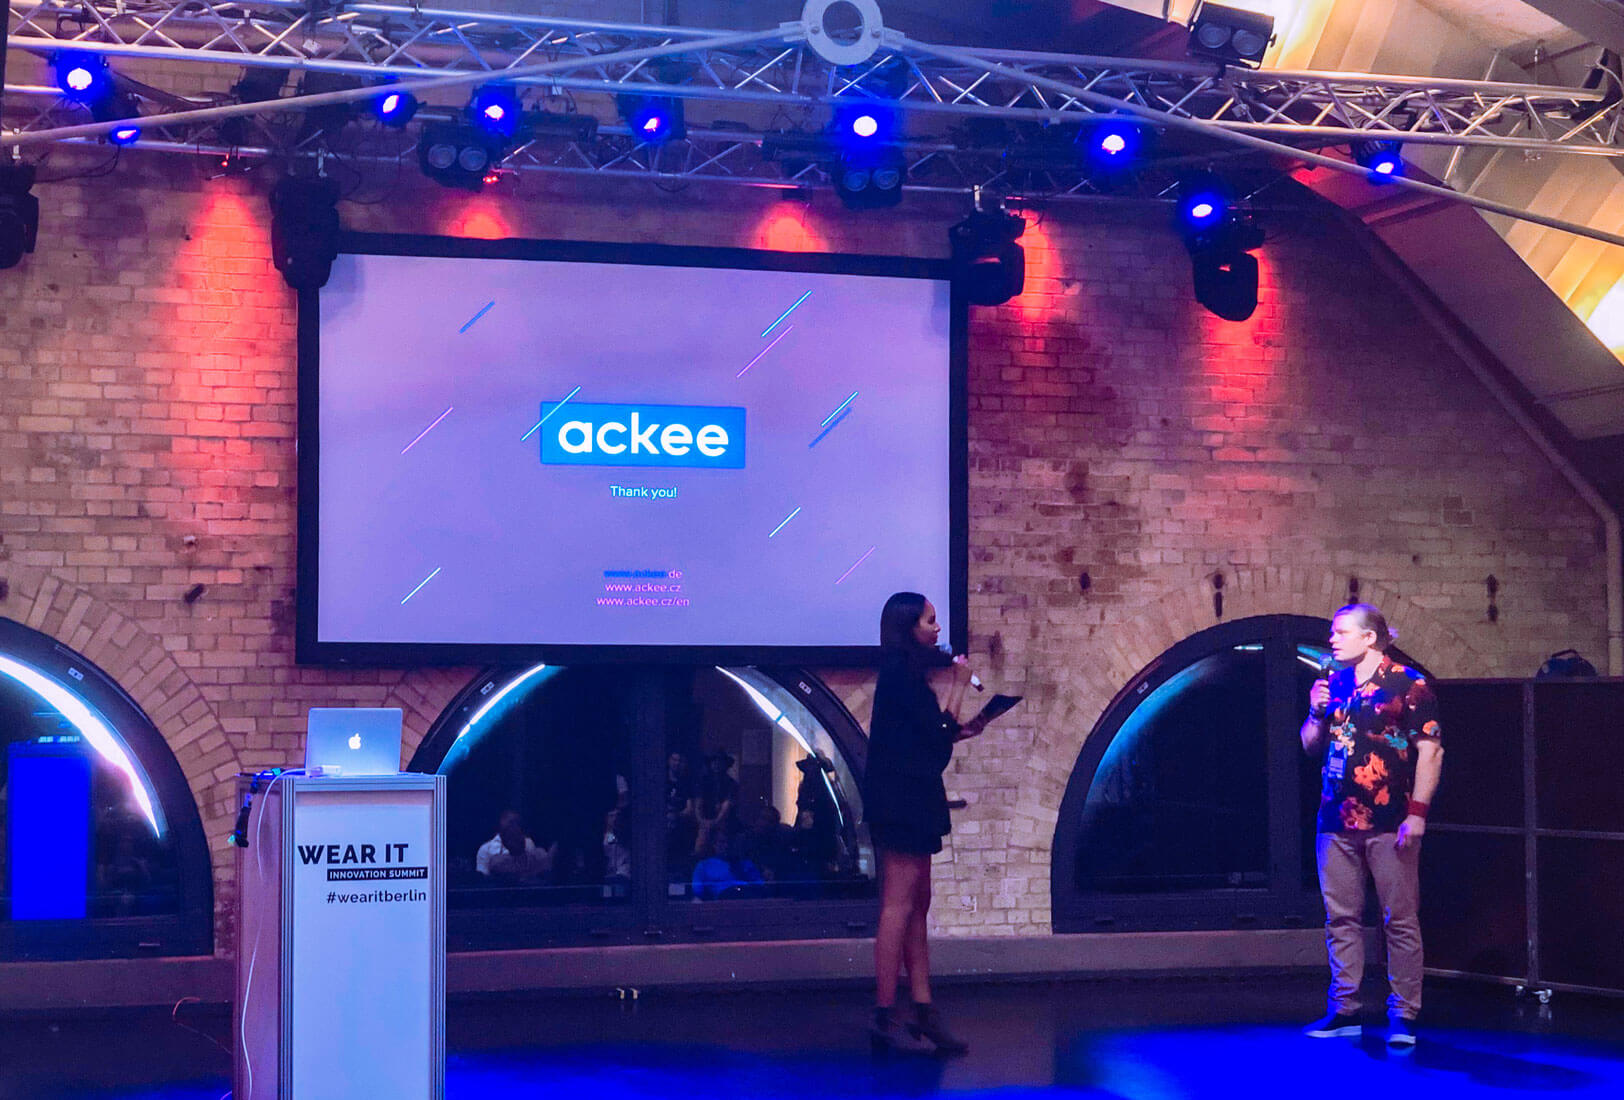 Unser Business Development Manager Alex beim Wear It Innovation Summit 2019. ©Ackee